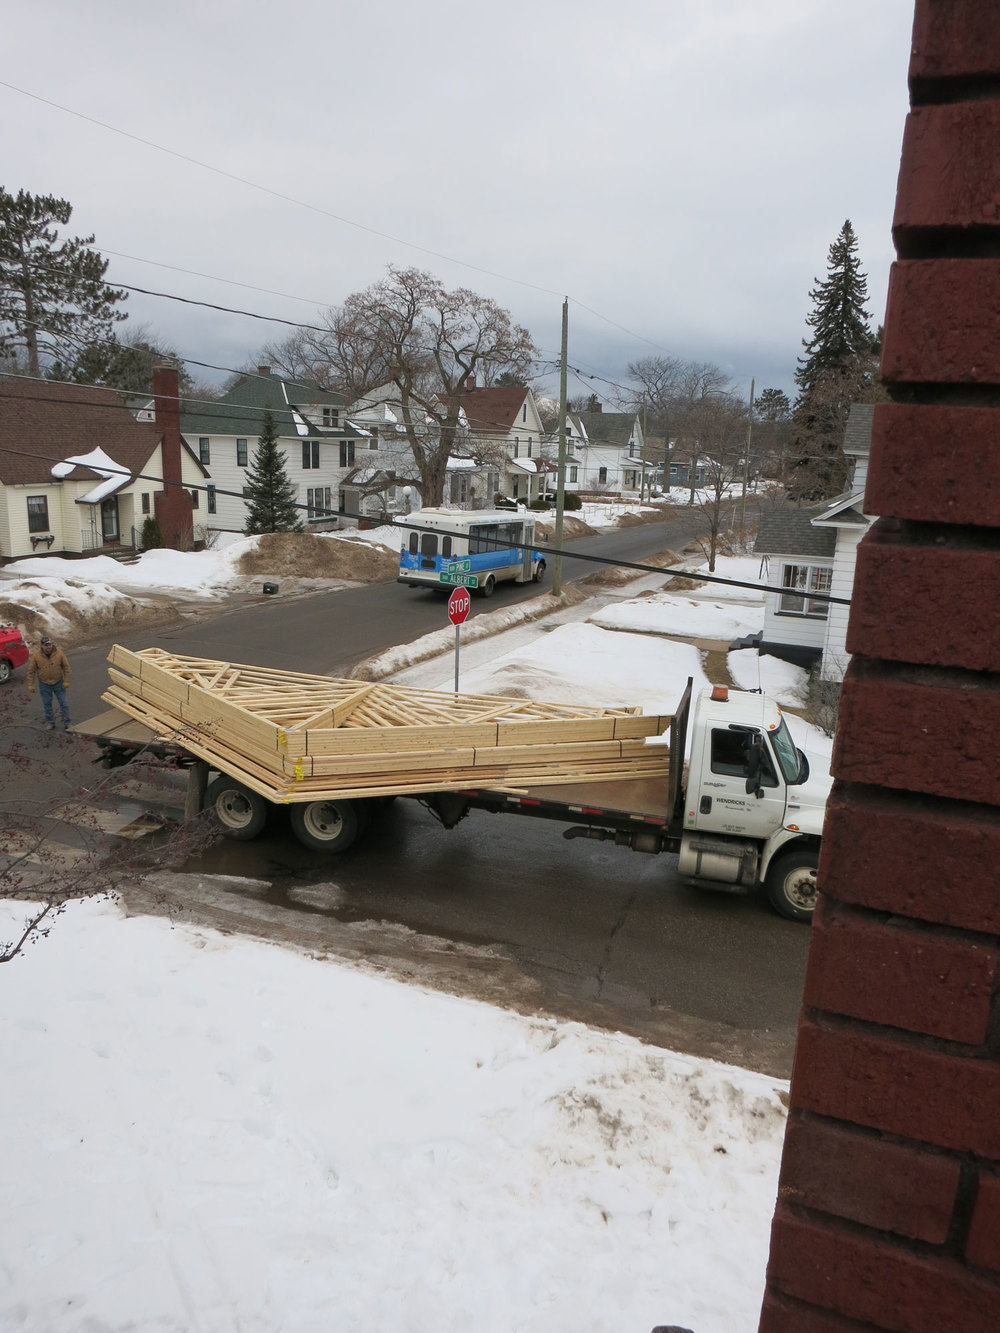 And the Trusses arrive!